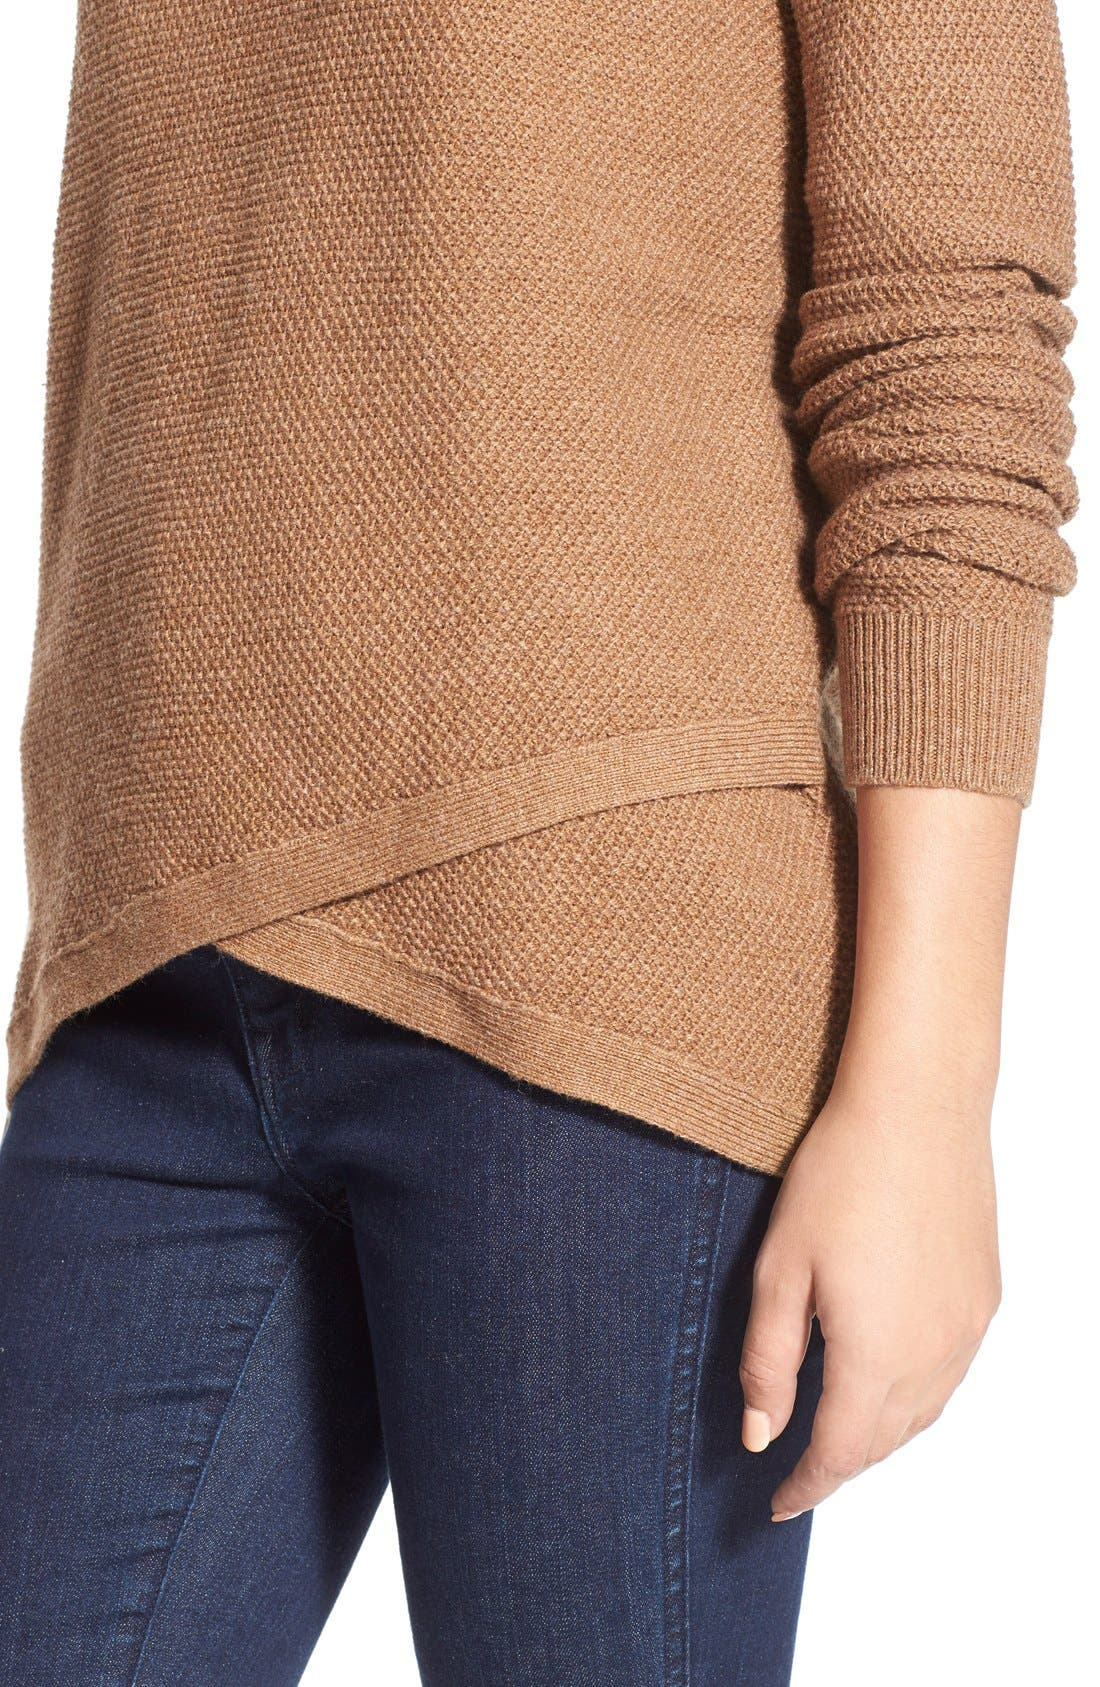 'Feature' Pullover Sweater,                             Alternate thumbnail 5, color,                             250